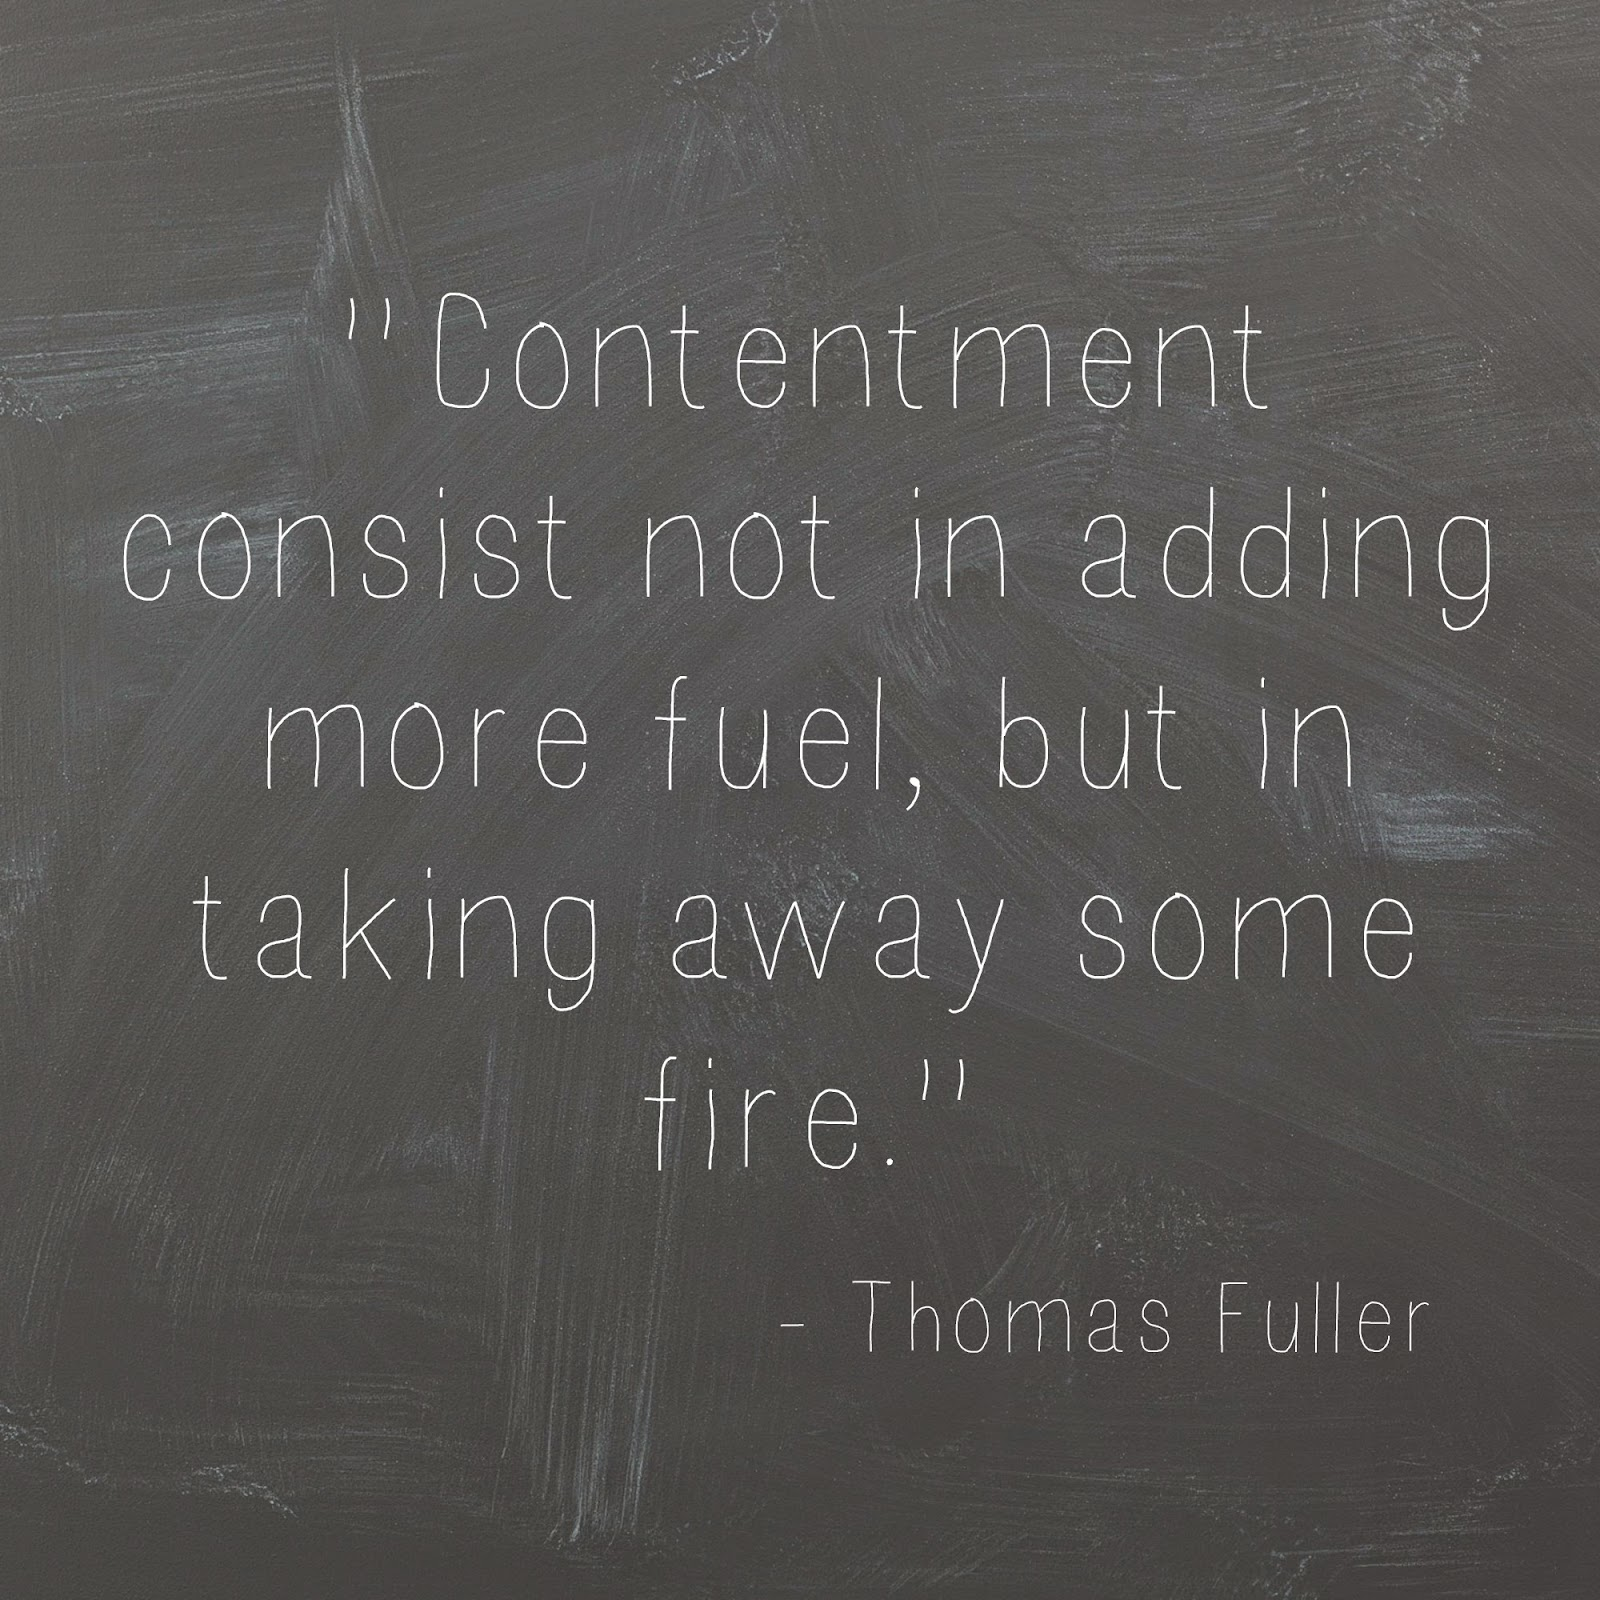 Contentment consist not in adding more fuel, but in taking away some fire. - Thomas fuller quote